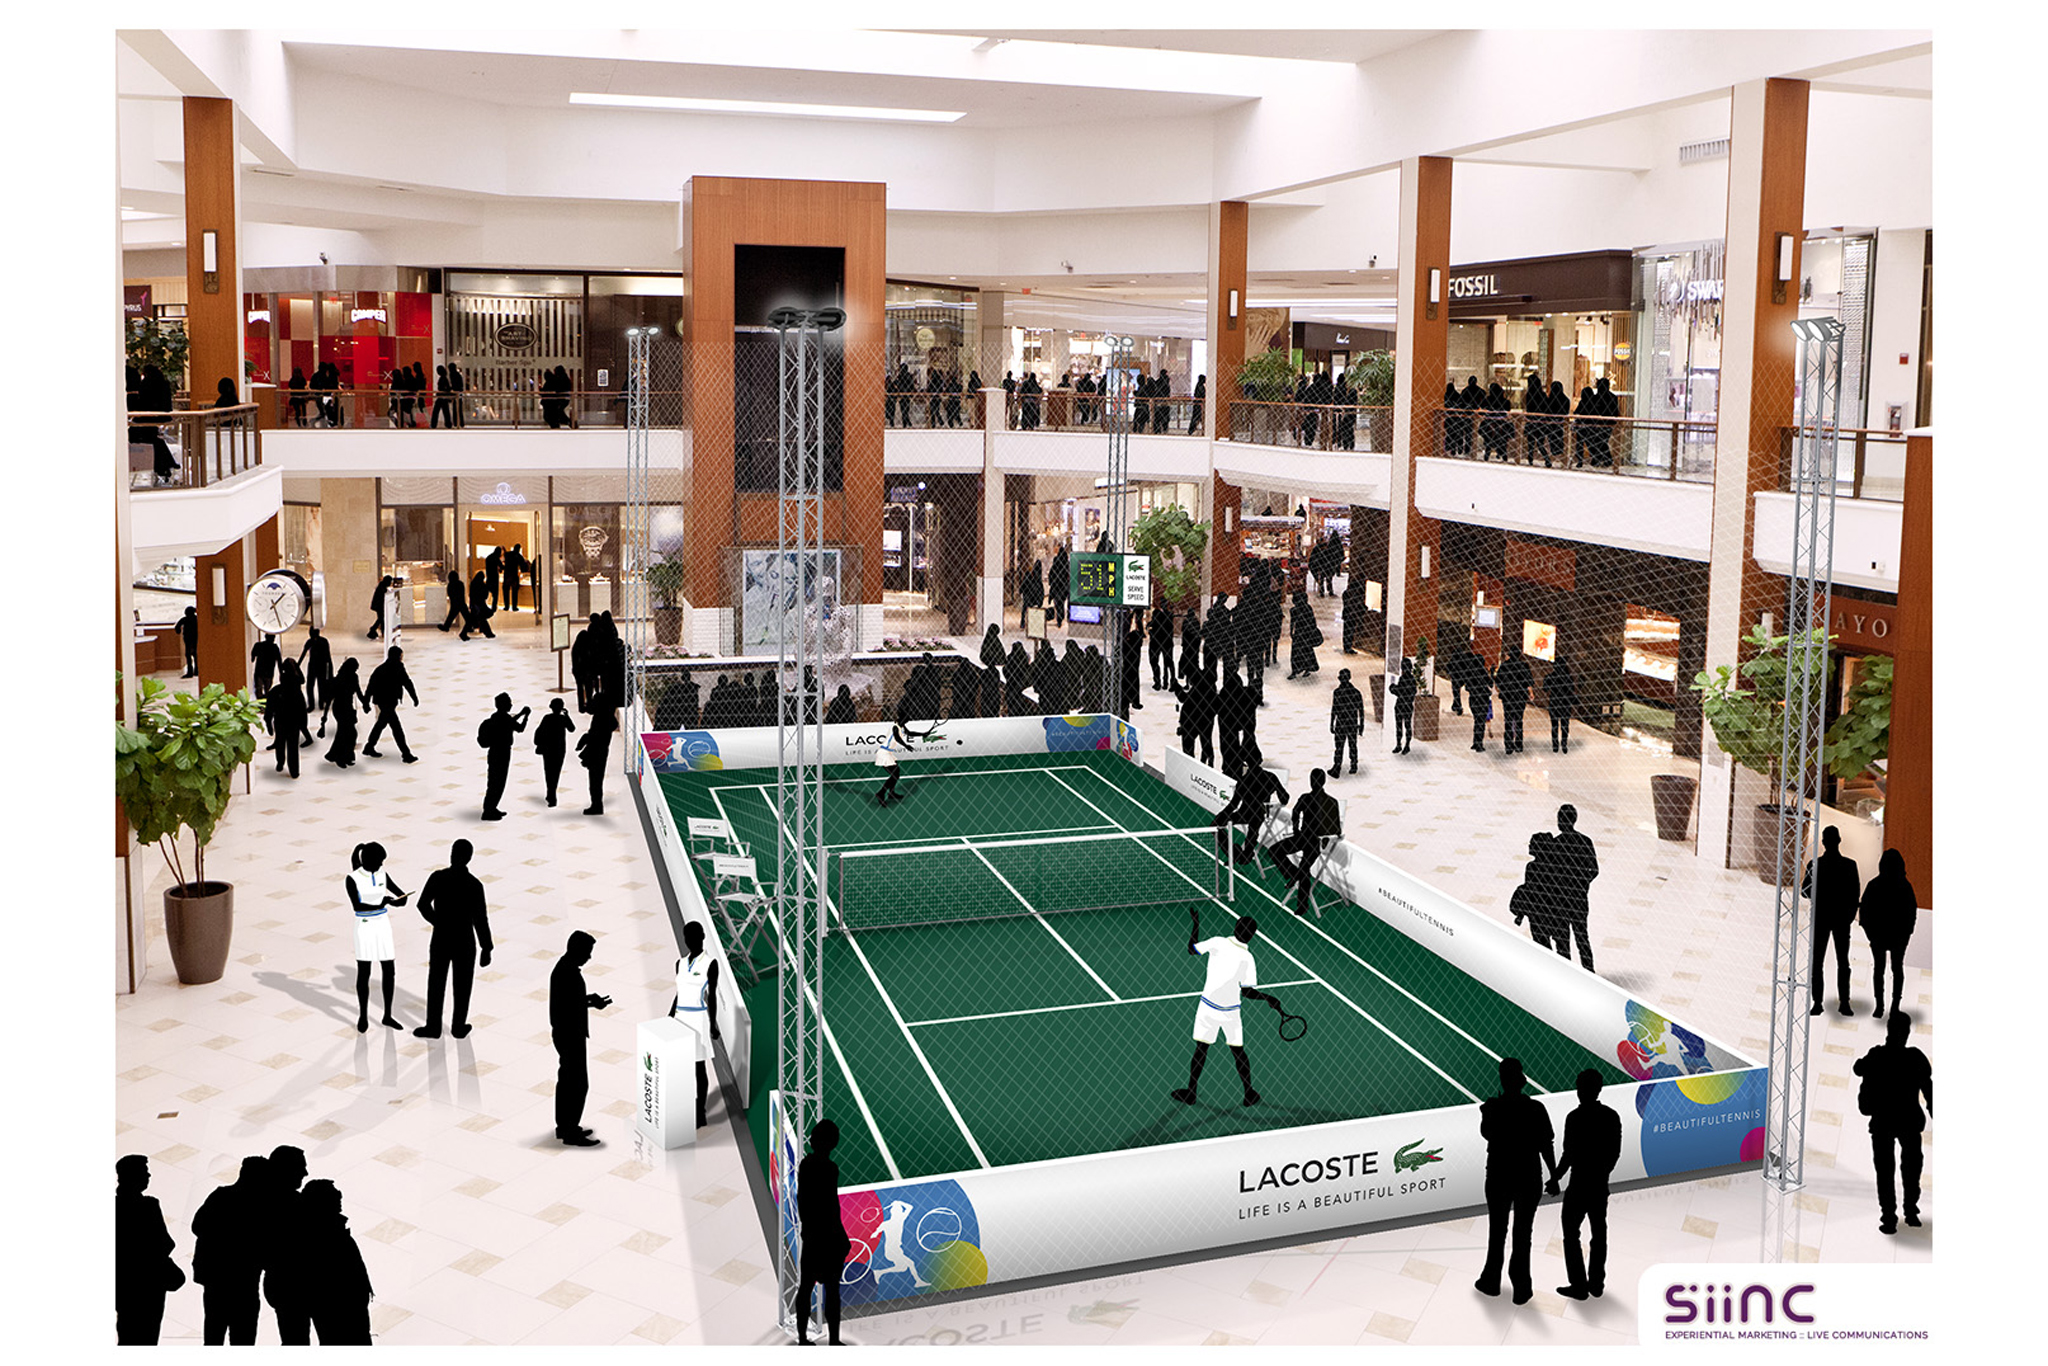 Lacoste rendering of tennis court at Aventura Mall in Miami.